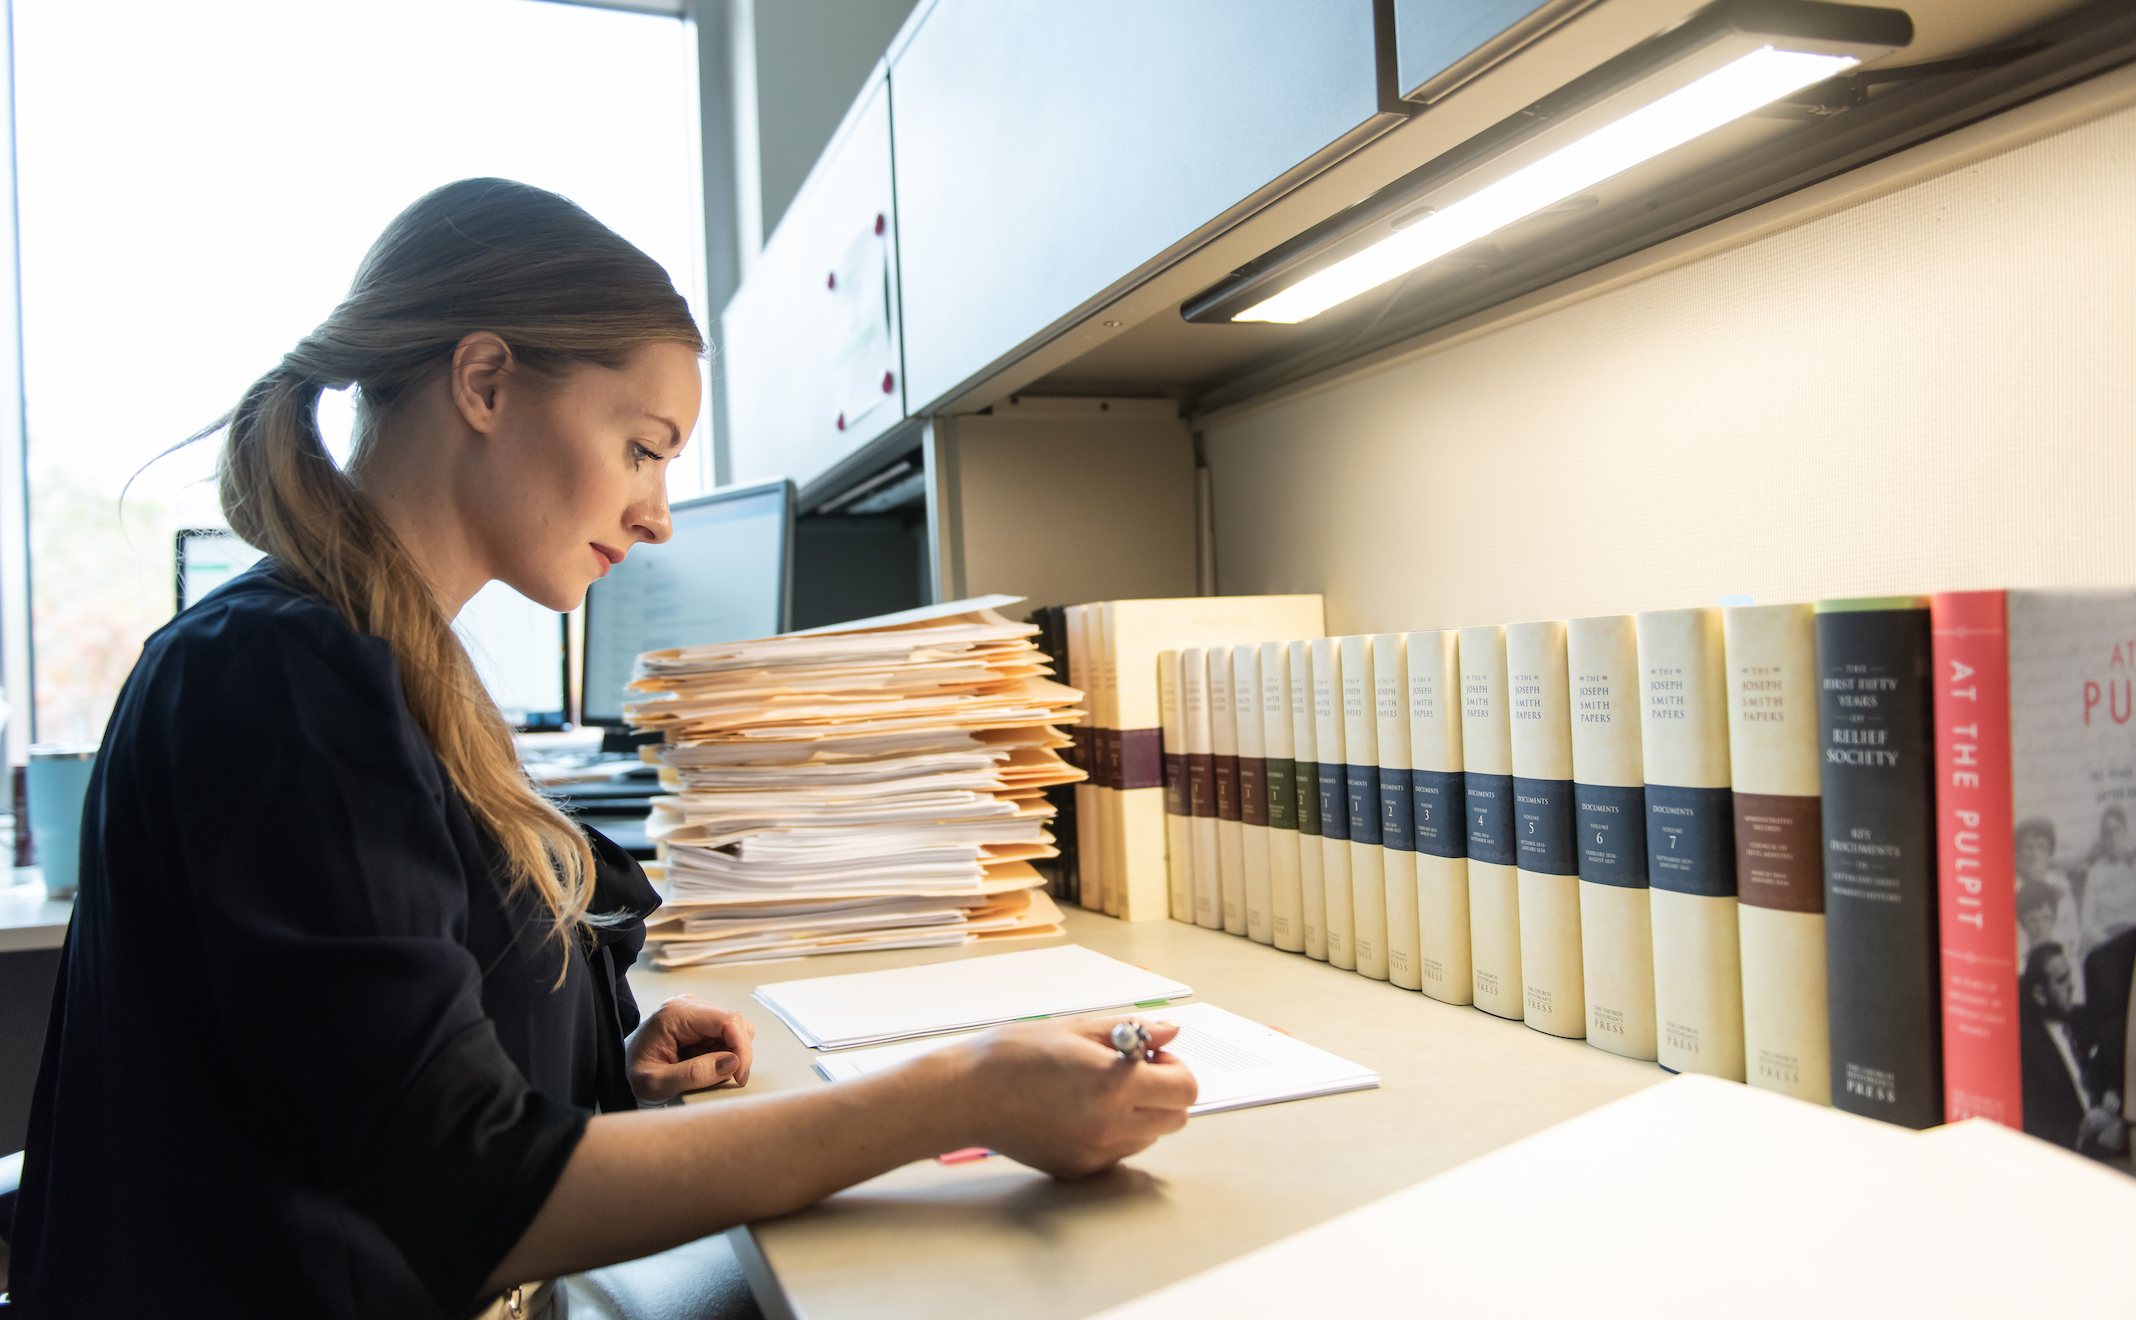 Shannon Kelly Jorgensen is a lead editor for the Joseph Smith Papers. She was photographed in her office while working on a forthcoming volume of the Joseph Smith Papers.